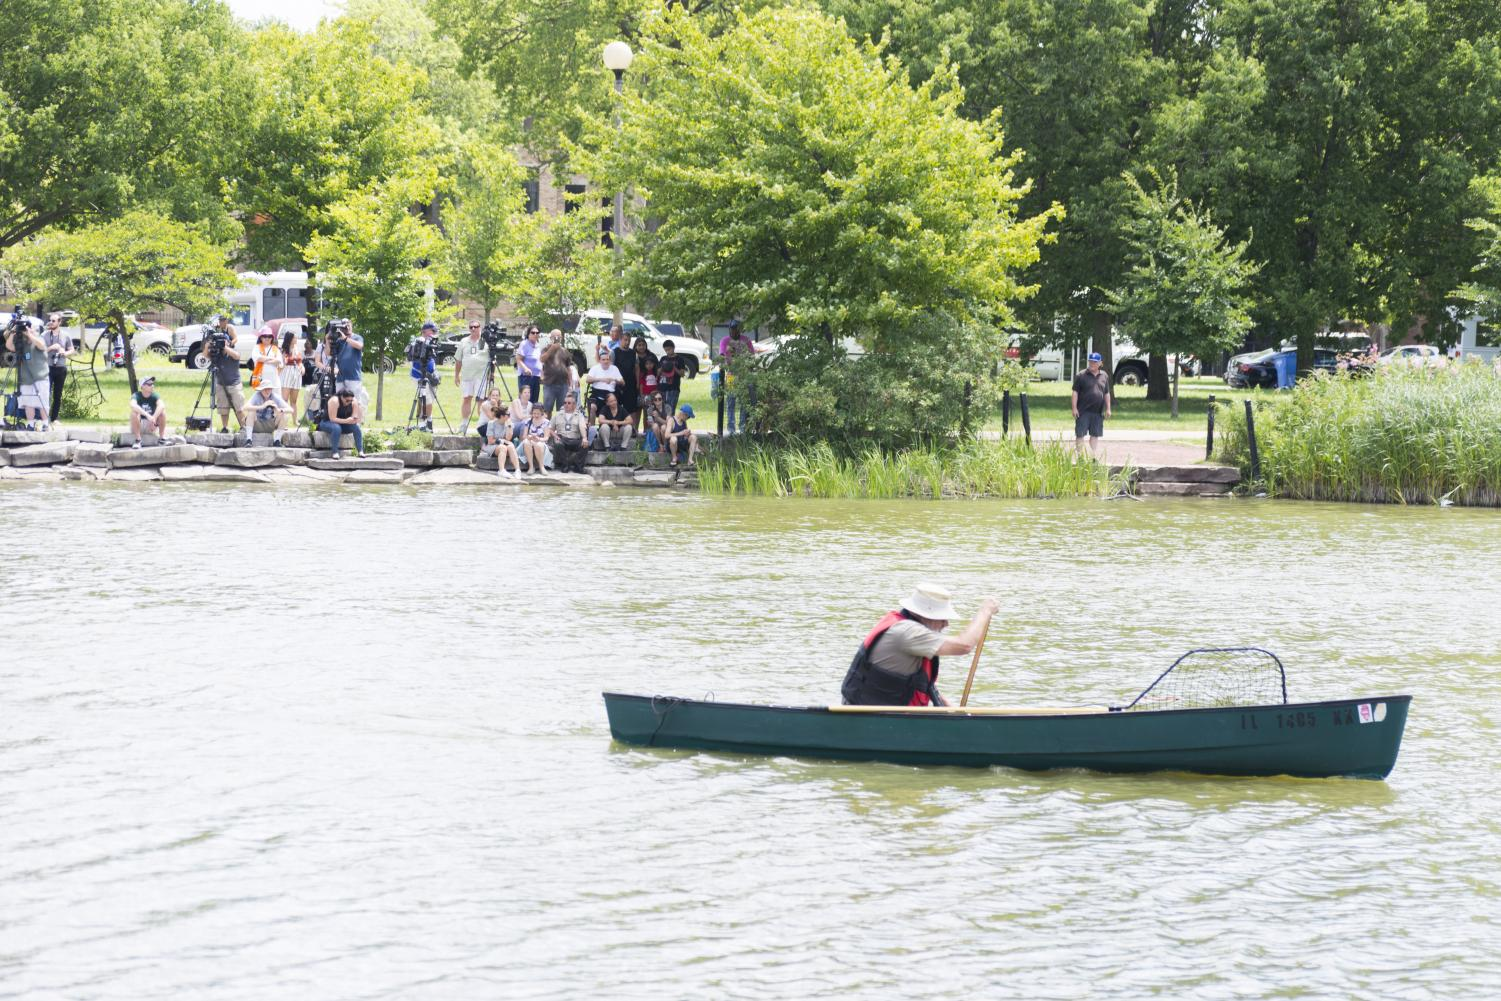 Members+of+the+media+and+other+spectators+watch+as+Alligator+Bob+paddles+across+Humboldt+Park+Lagoon.